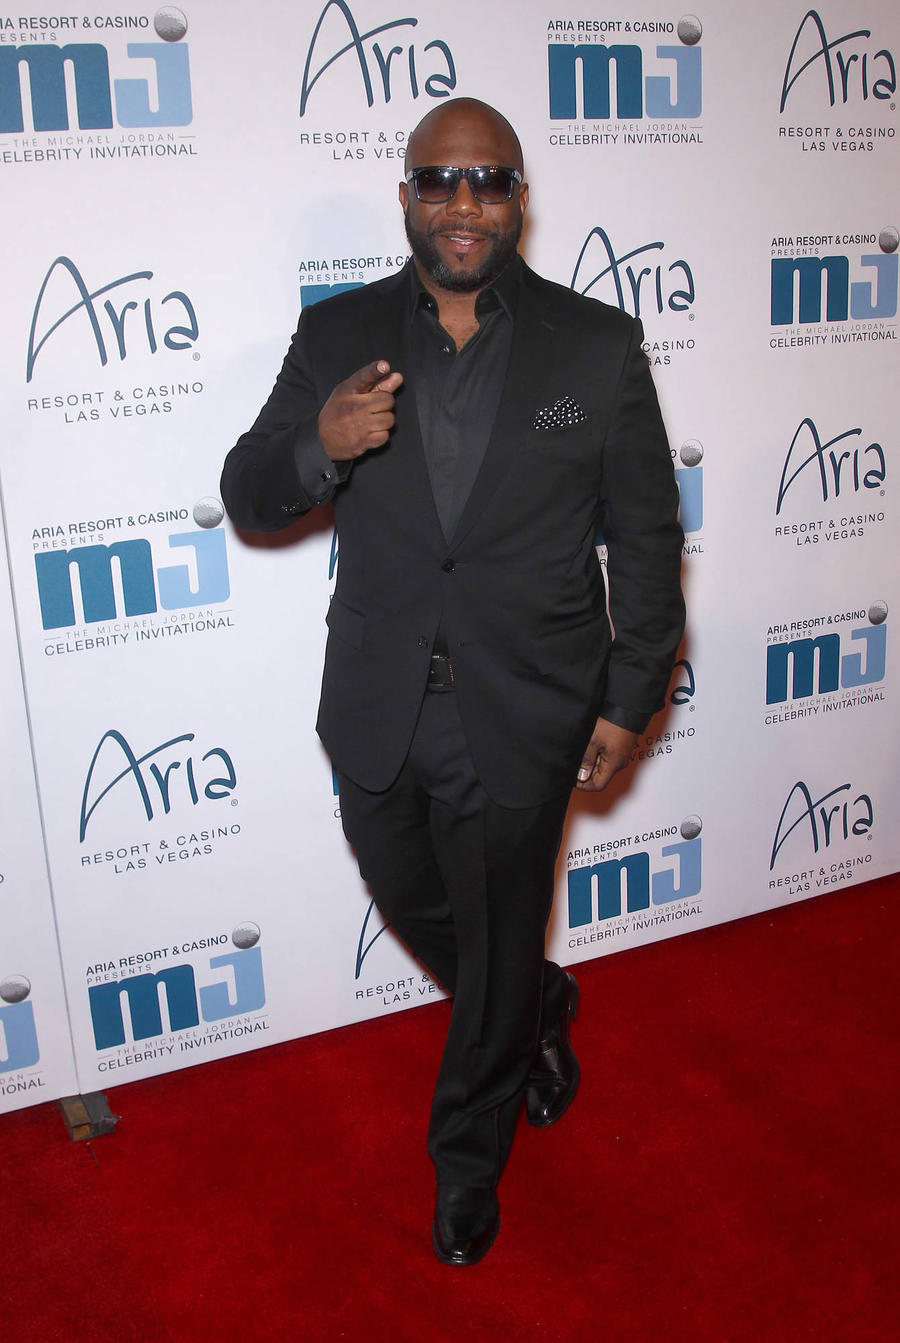 Wanya Morris Losing Weight On Dance Show